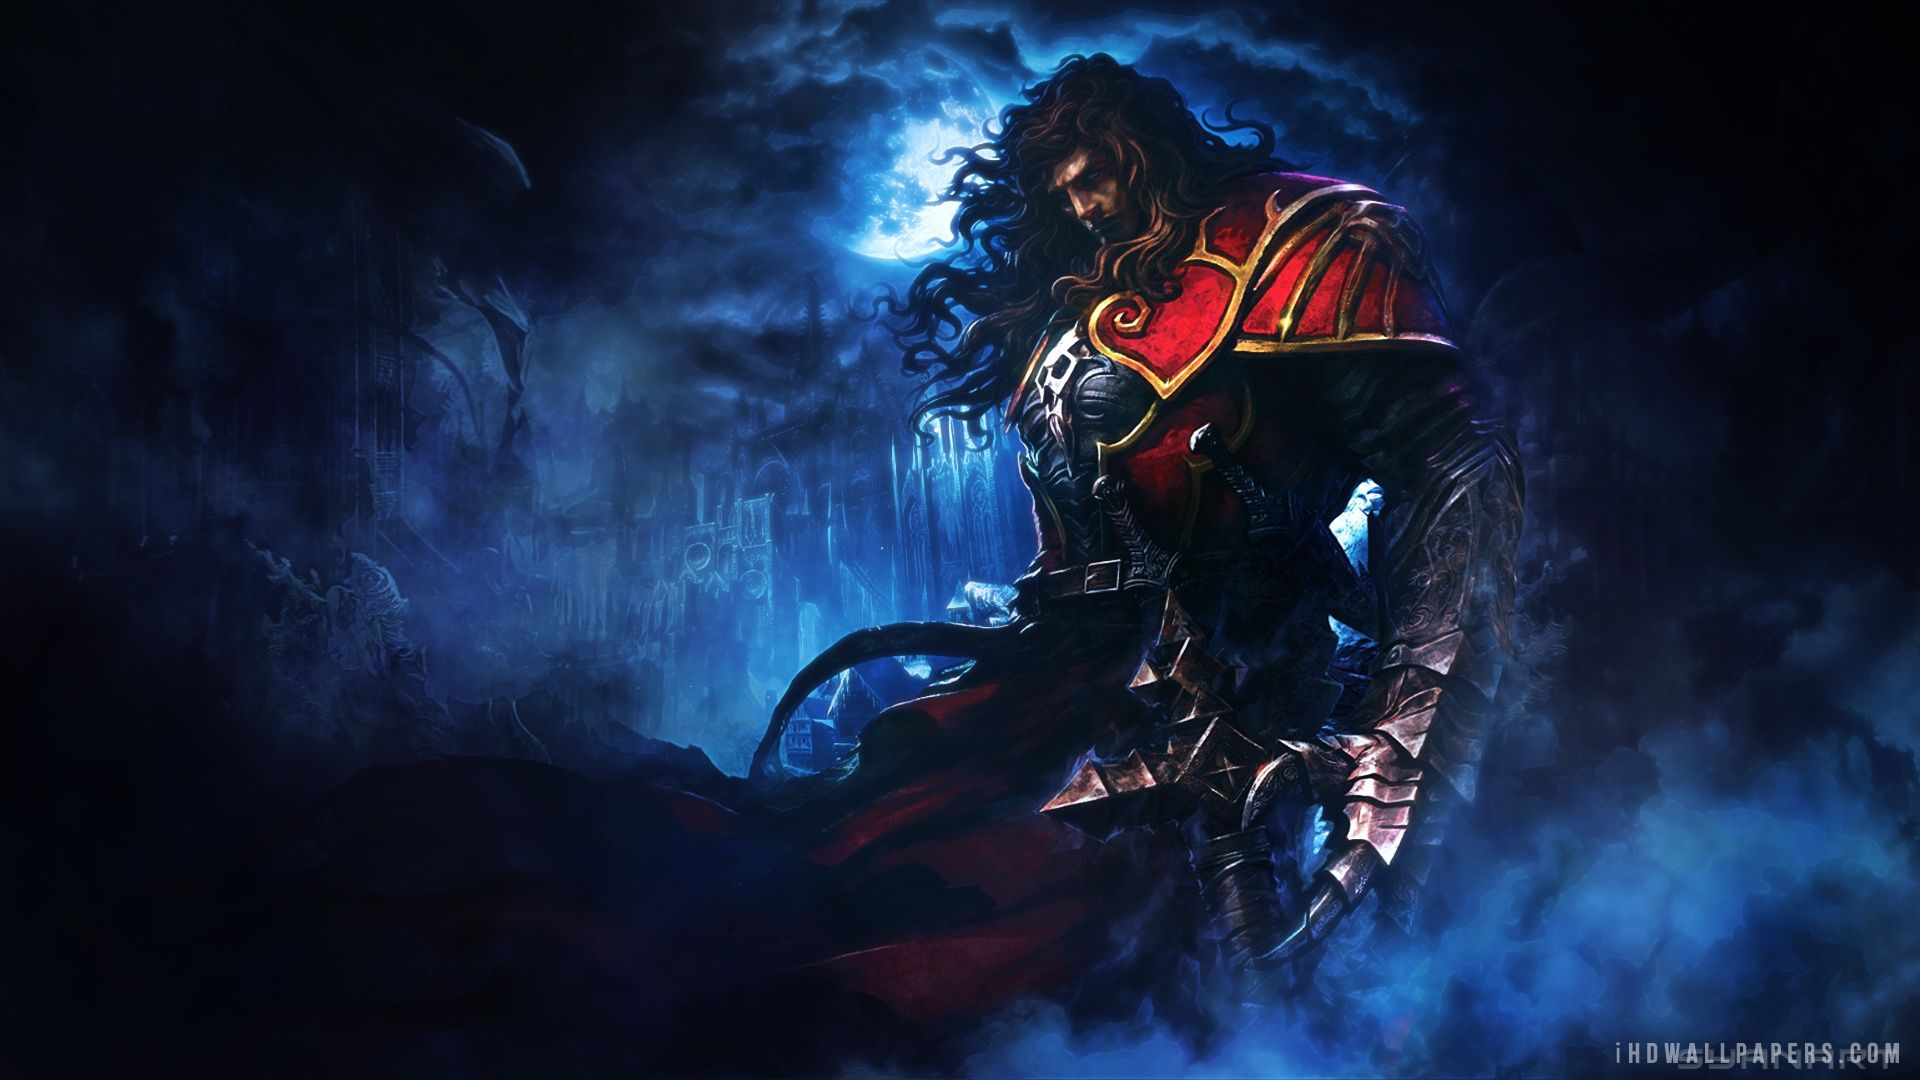 best images about castlevania wallpapers on pinterest legends 1920